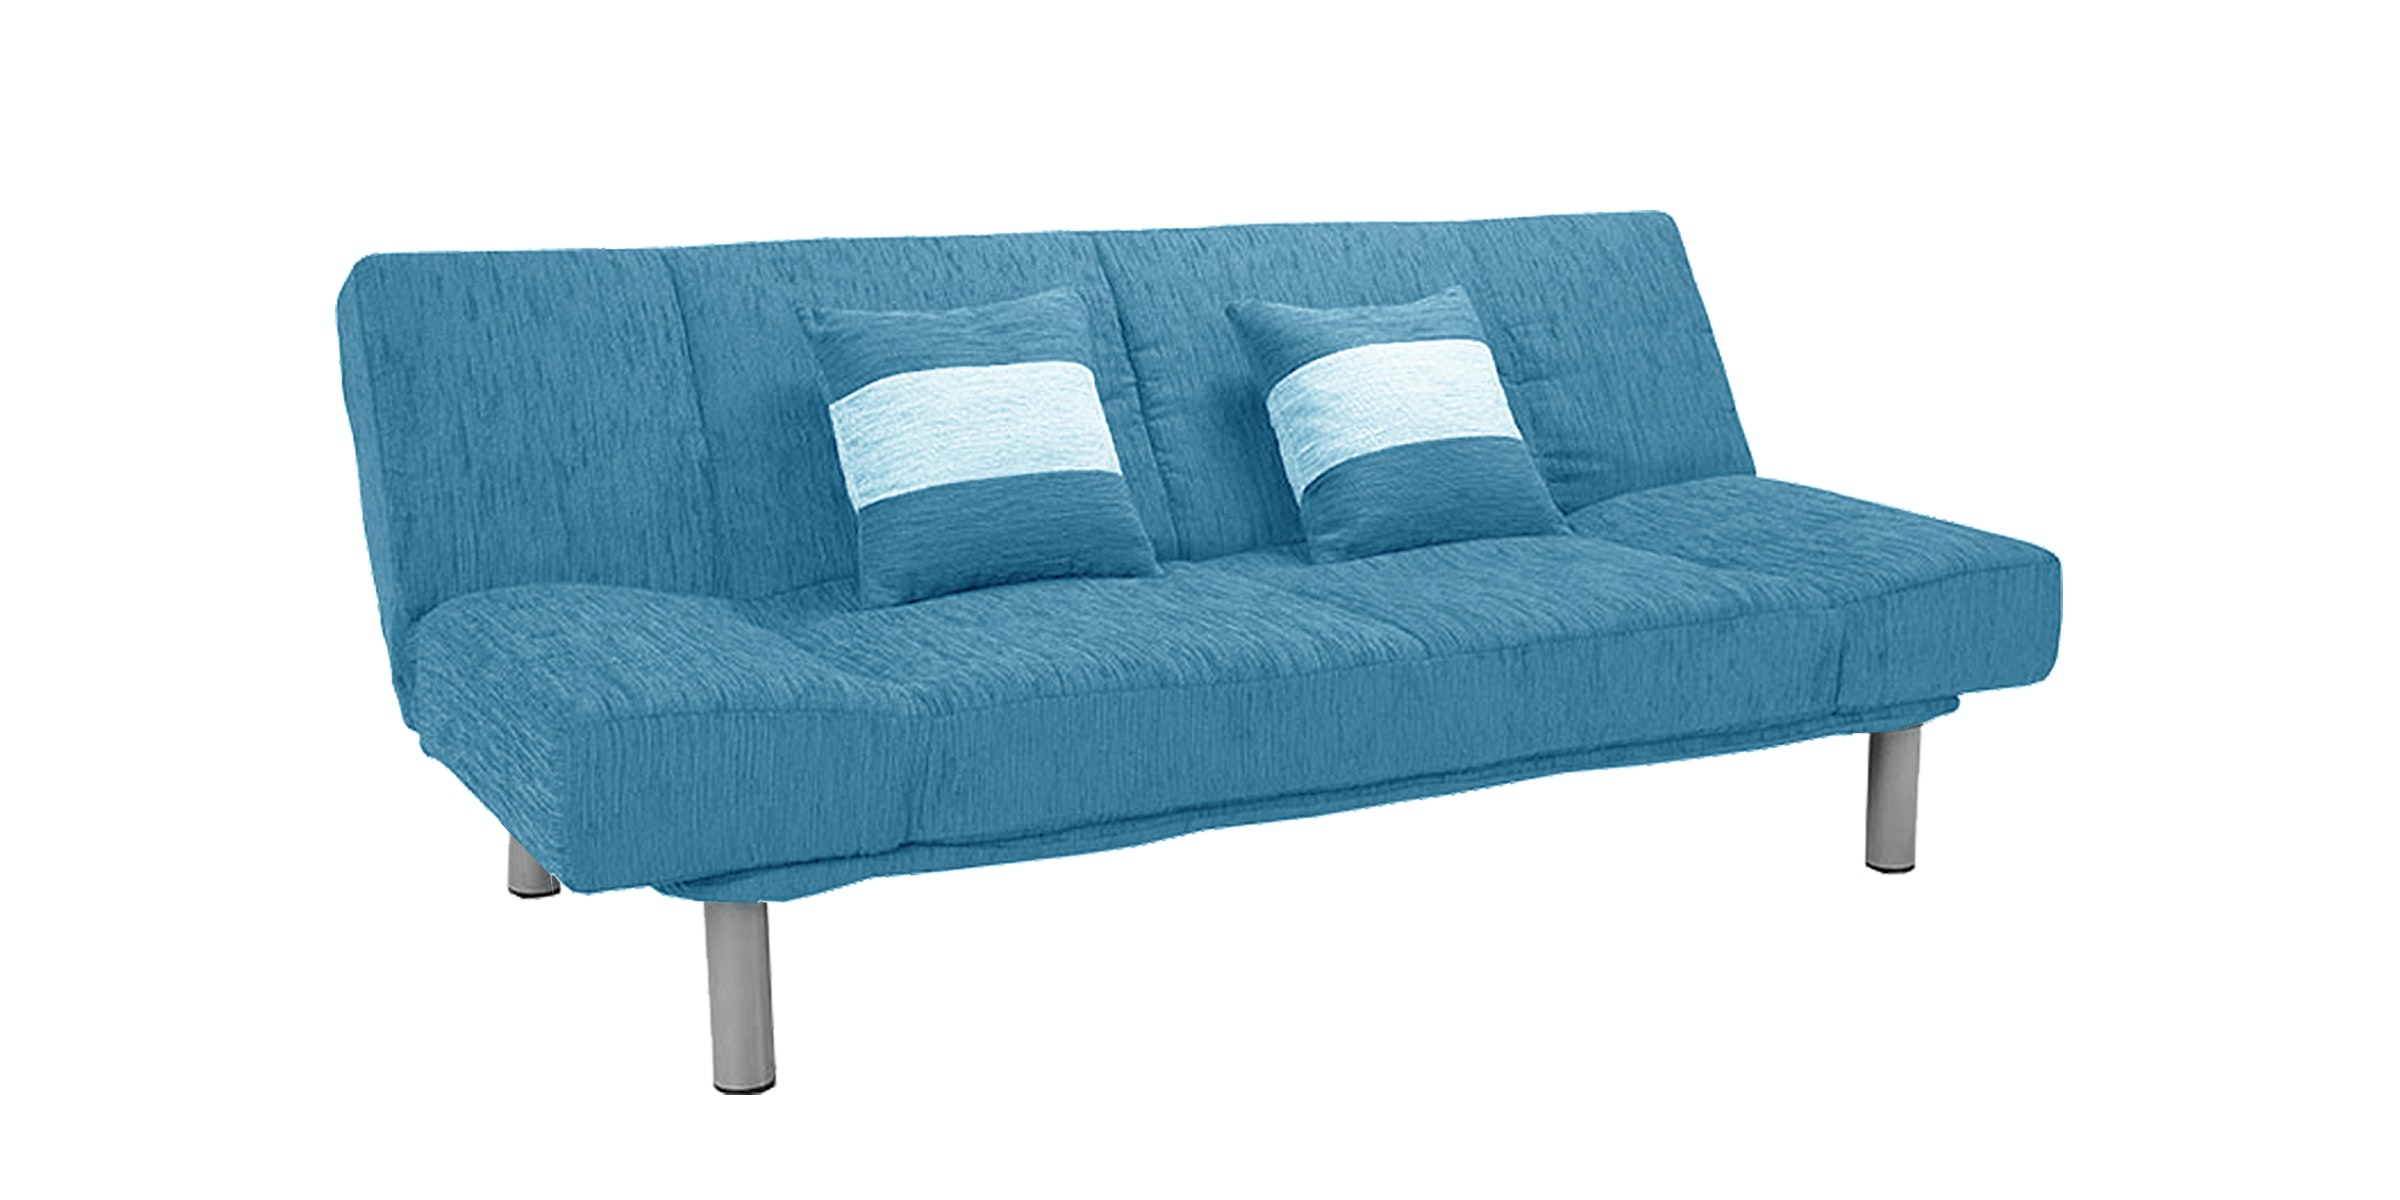 Atease By Inoac Sofa Bed Fina Blue